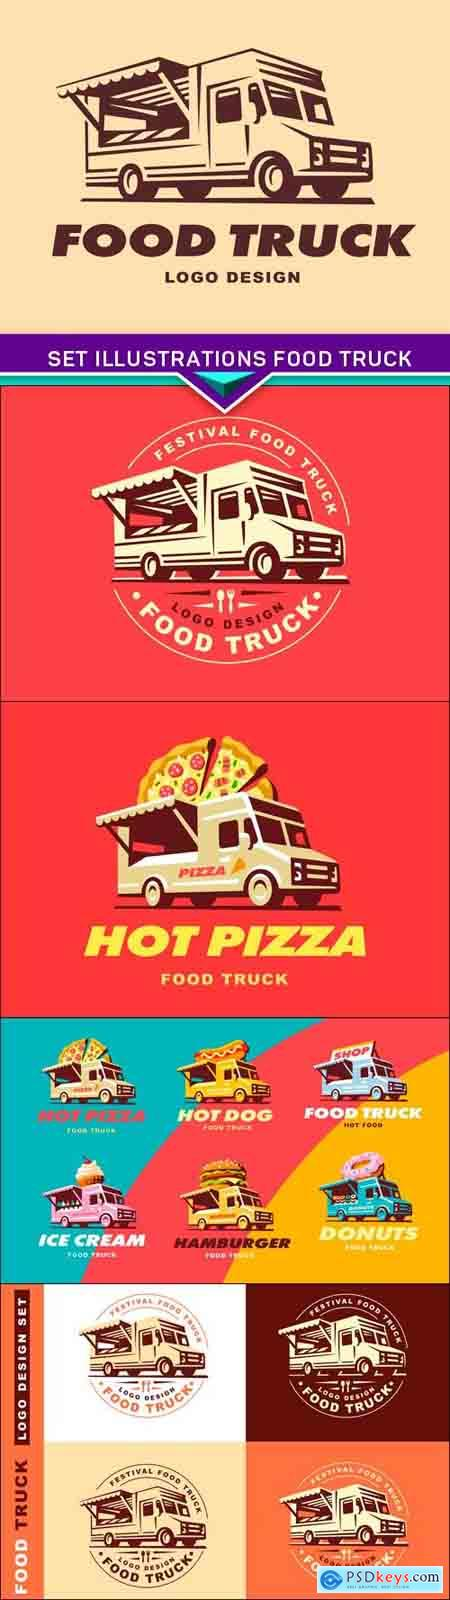 Set illustrations food truck 5X EPS